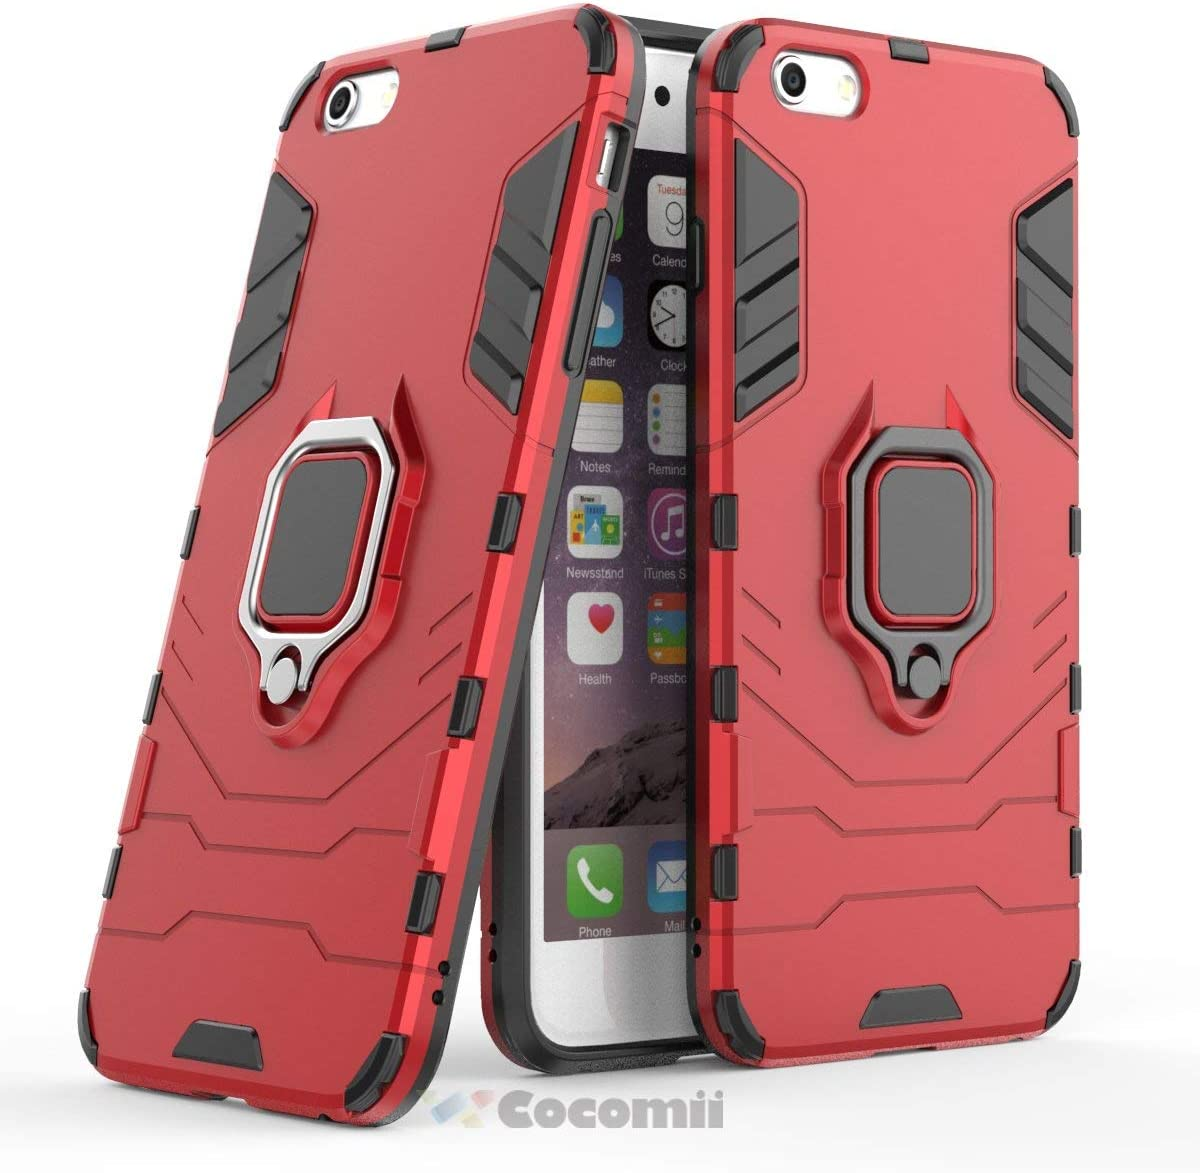 Cocomii Black Panther Armor iPhone 6S Plus/6 Plus Case New [Heavy Duty] Tactical Metal Ring Grip Kickstand Shockproof [Works with Magnetic Car Mount] Cover for Apple iPhone 6S Plus/6 Plus (B.Red)